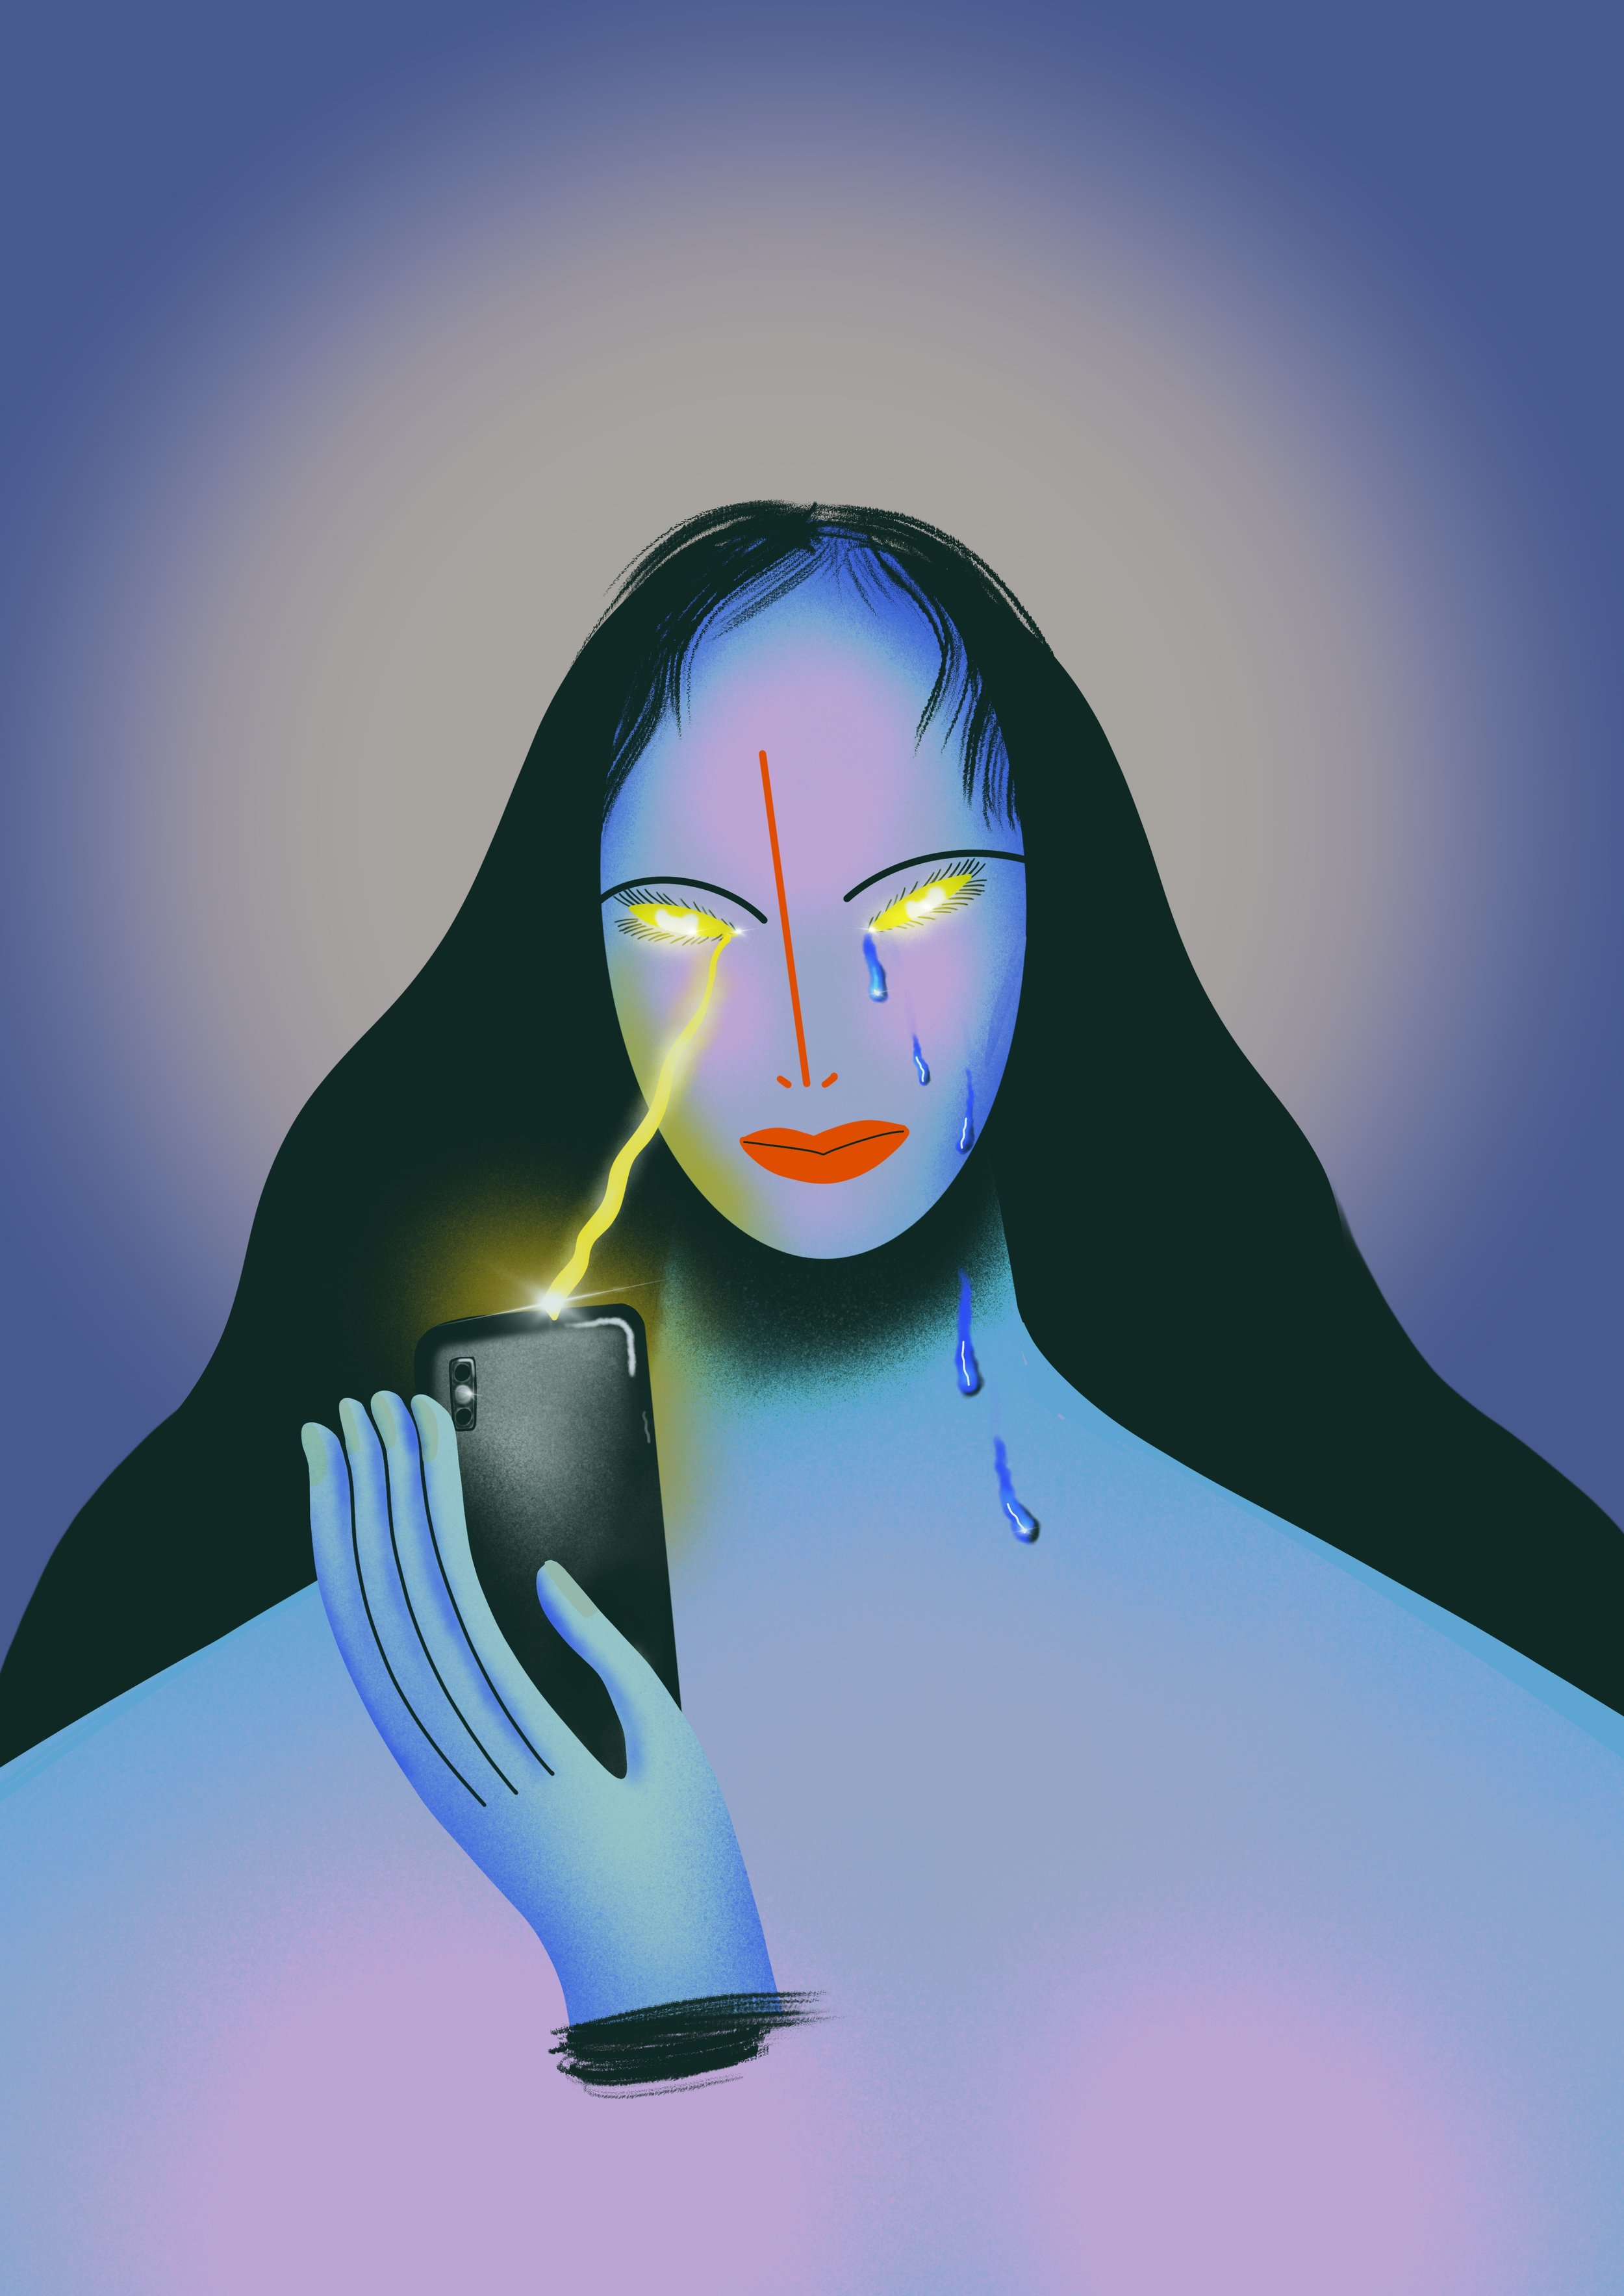 """""""Technology and social media are double-edged swords - unlocking my phone to find many notifications can make me feel my best, just as unlocking it to find nothing can make me feel my worst."""" - -Olivia HealyOn: Technology"""